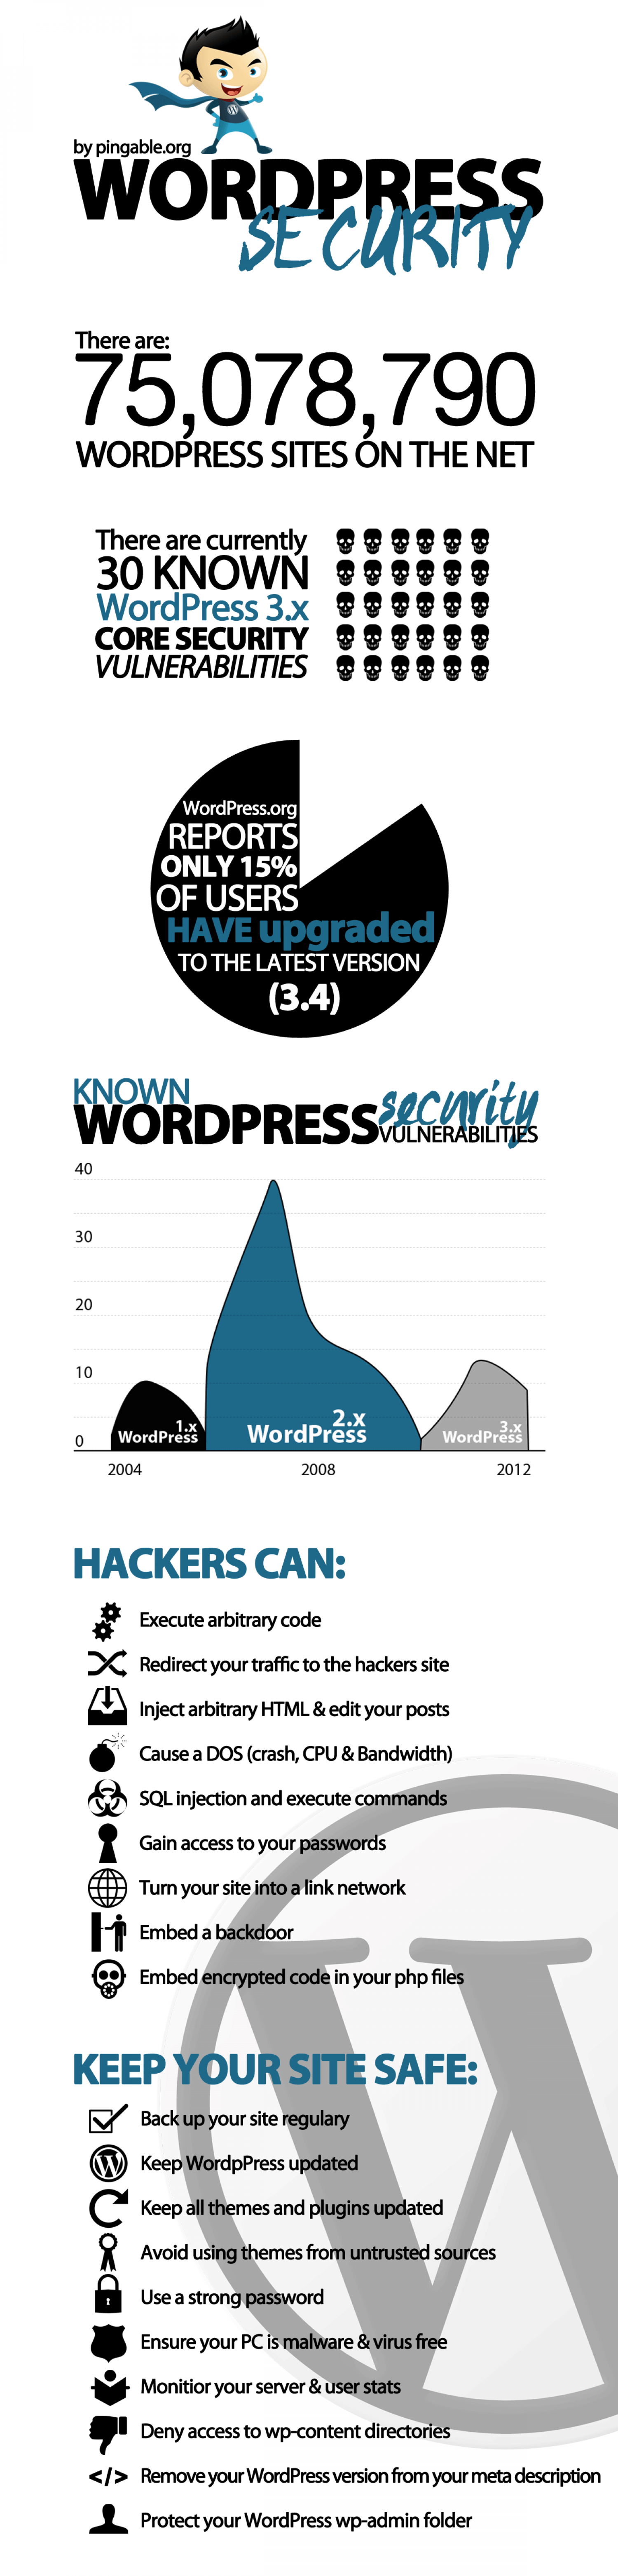 Original Free WordPress Security Infographic Infographic